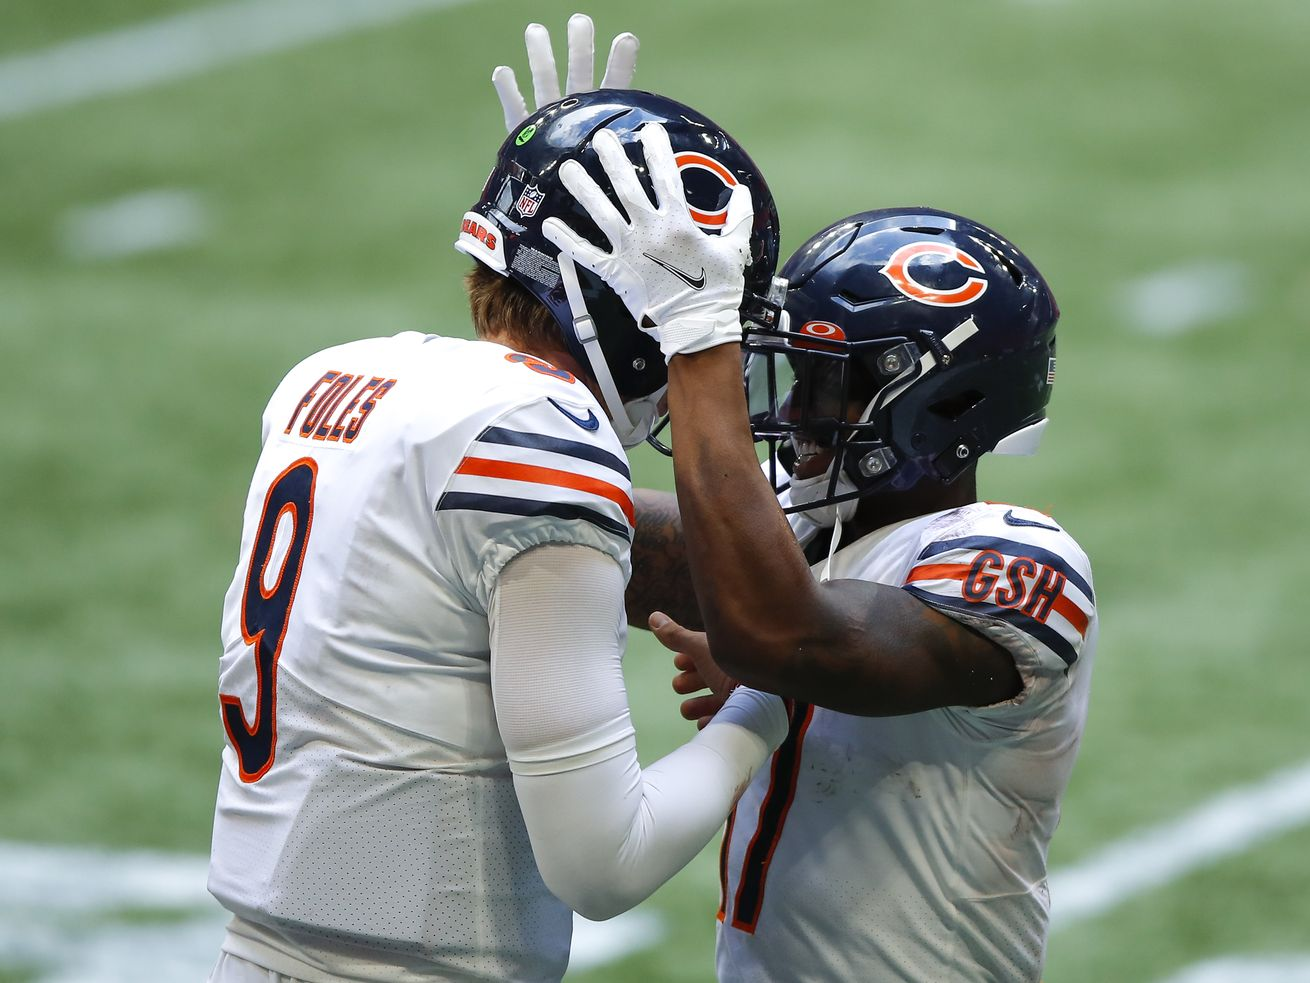 Buckle up for a wild ride as Nick Foles replaces Mitch Trubisky as Bears QB